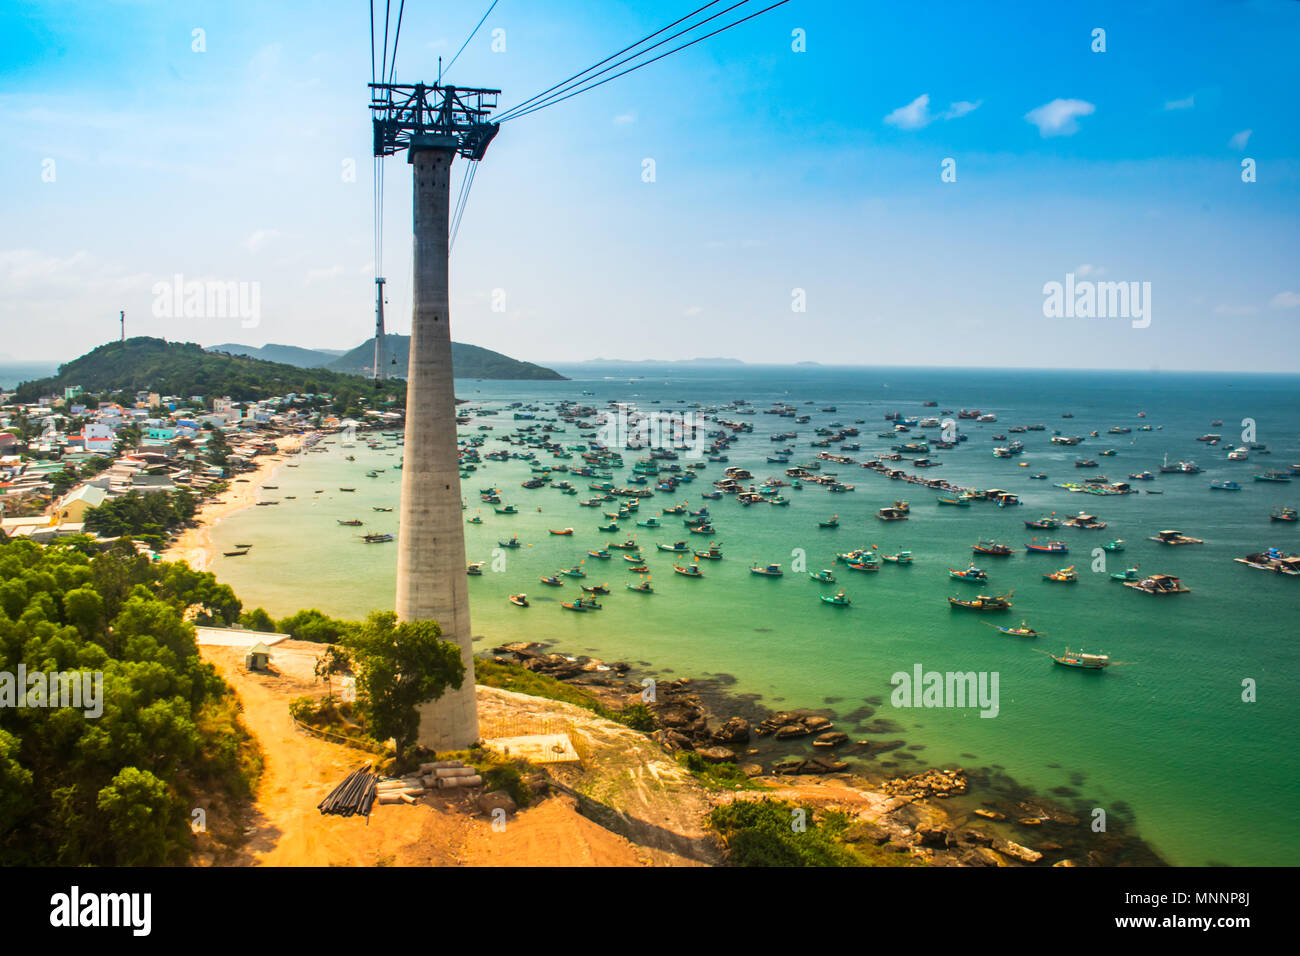 The Longest Cable Car, Phu Quoc Island in Vietnam - Stock Image